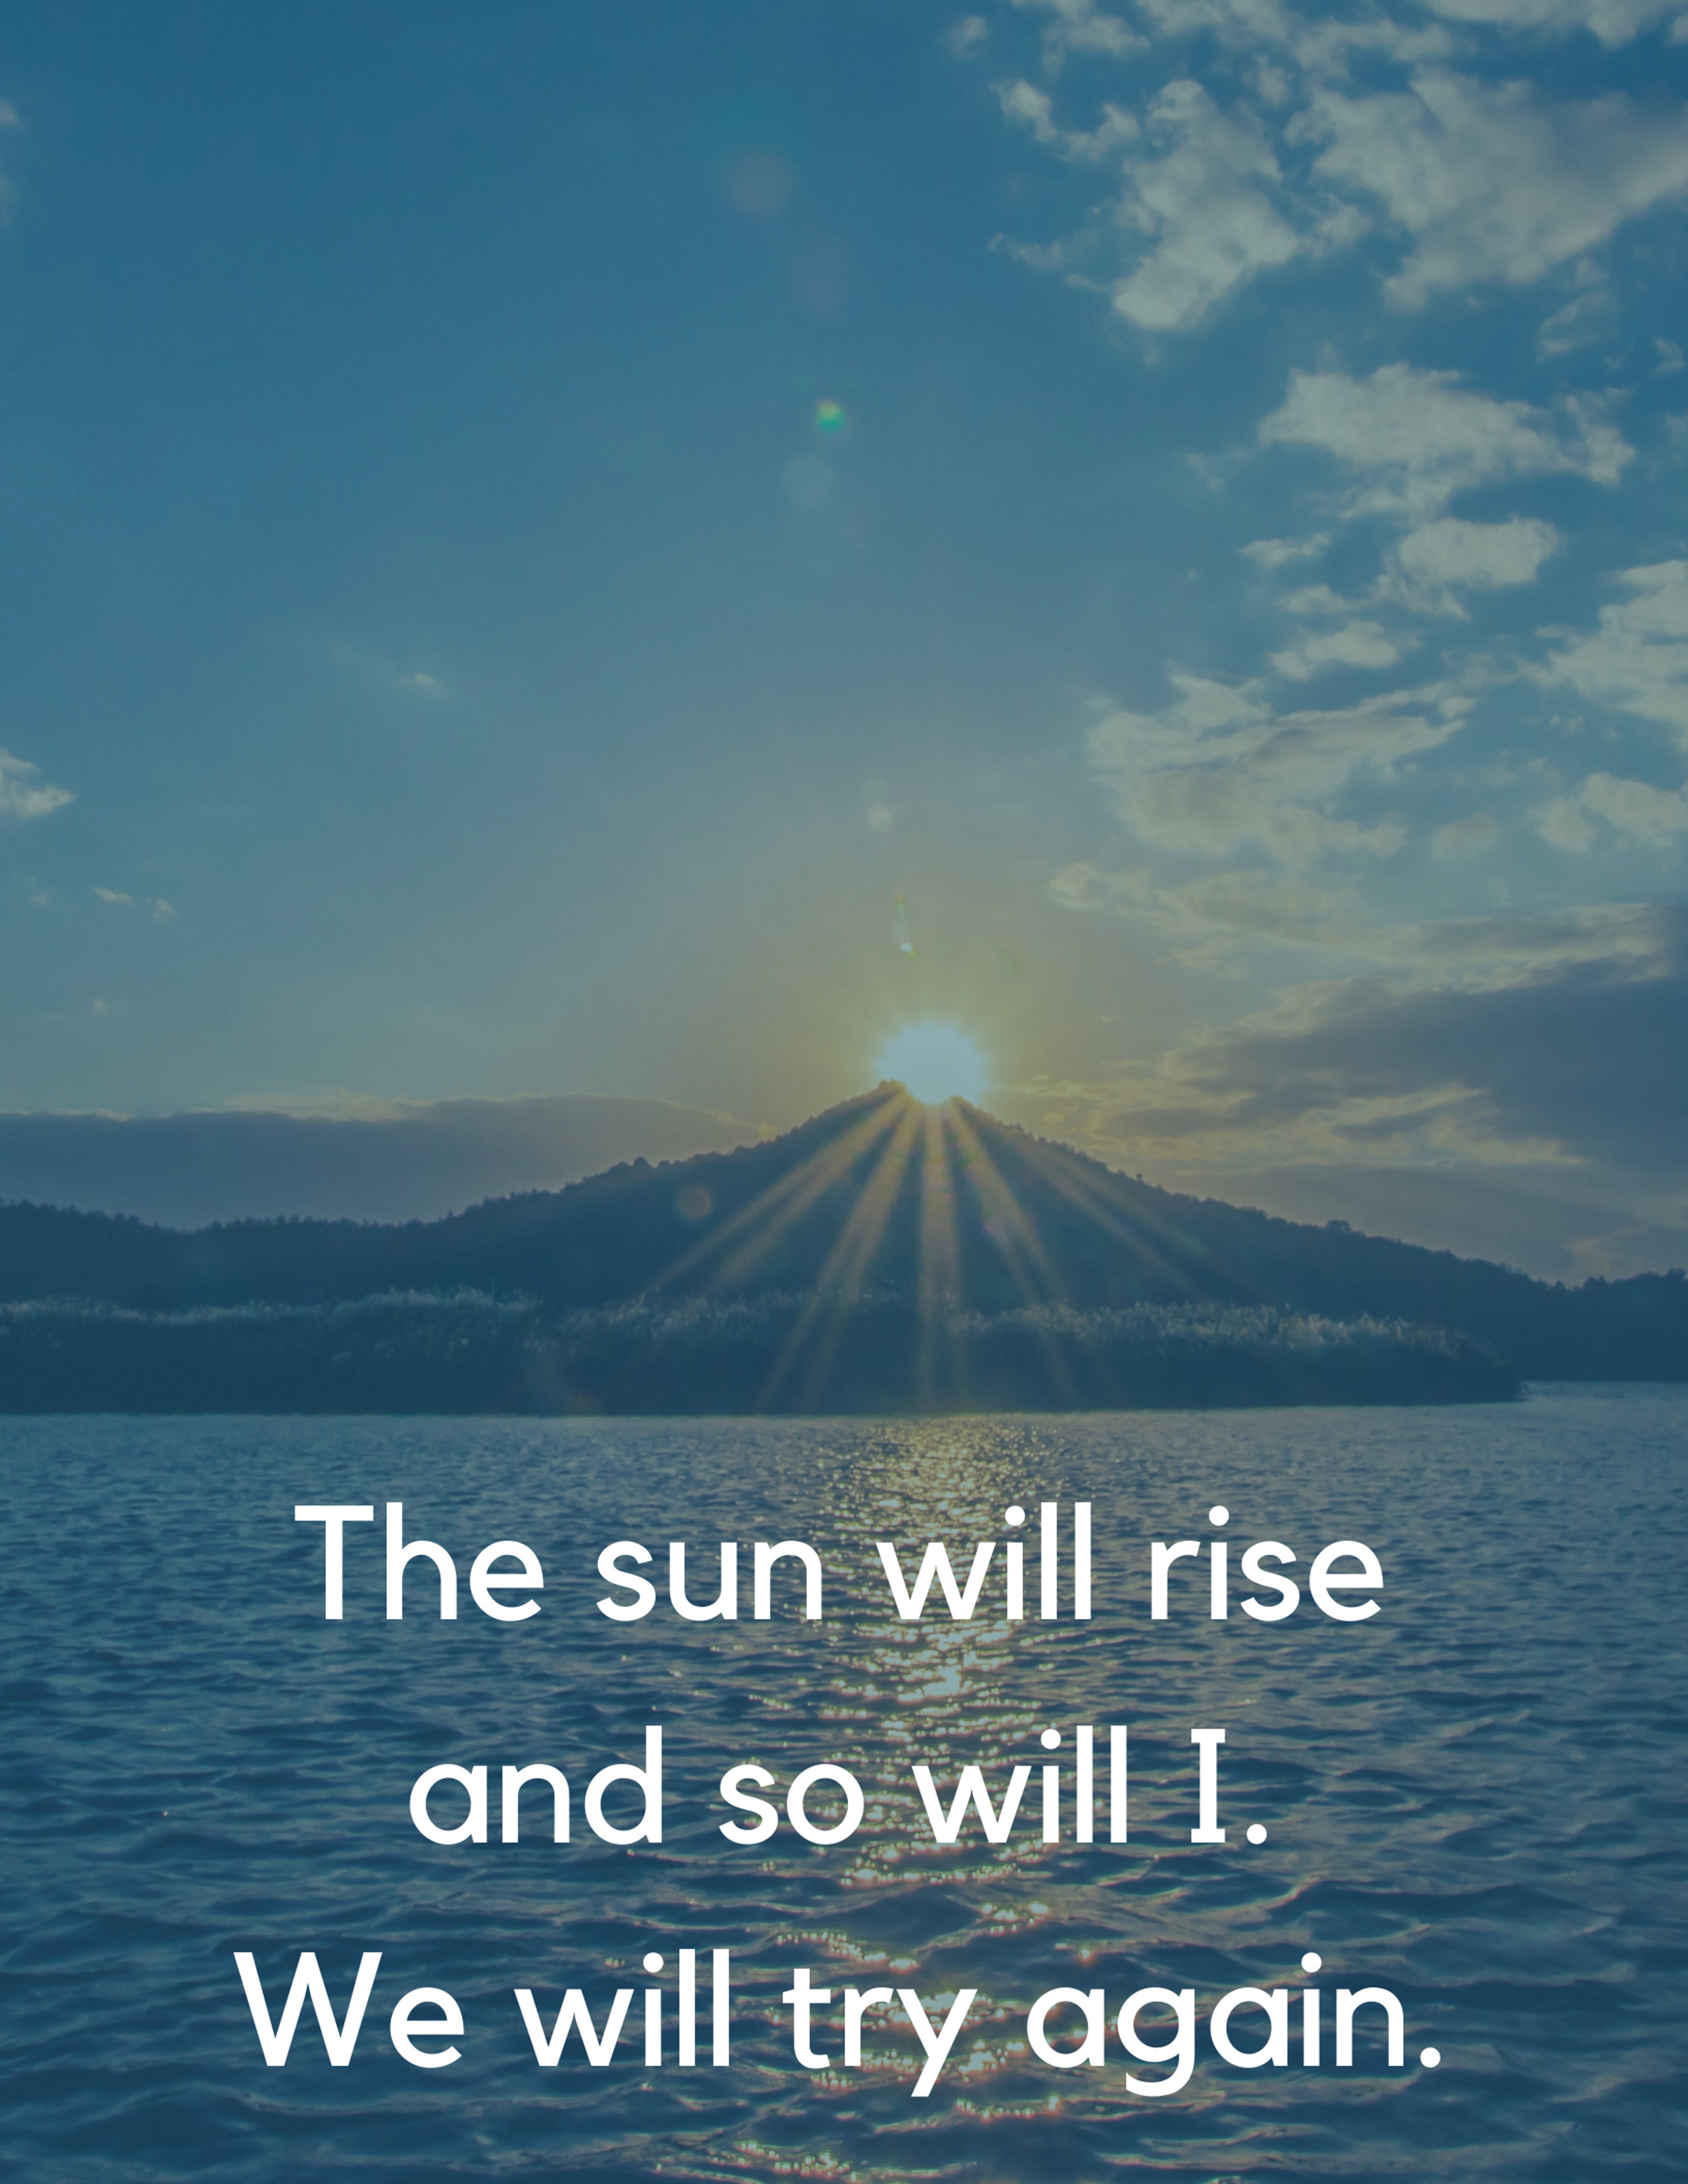 The sun will rise and so will I - We will try again.jpg